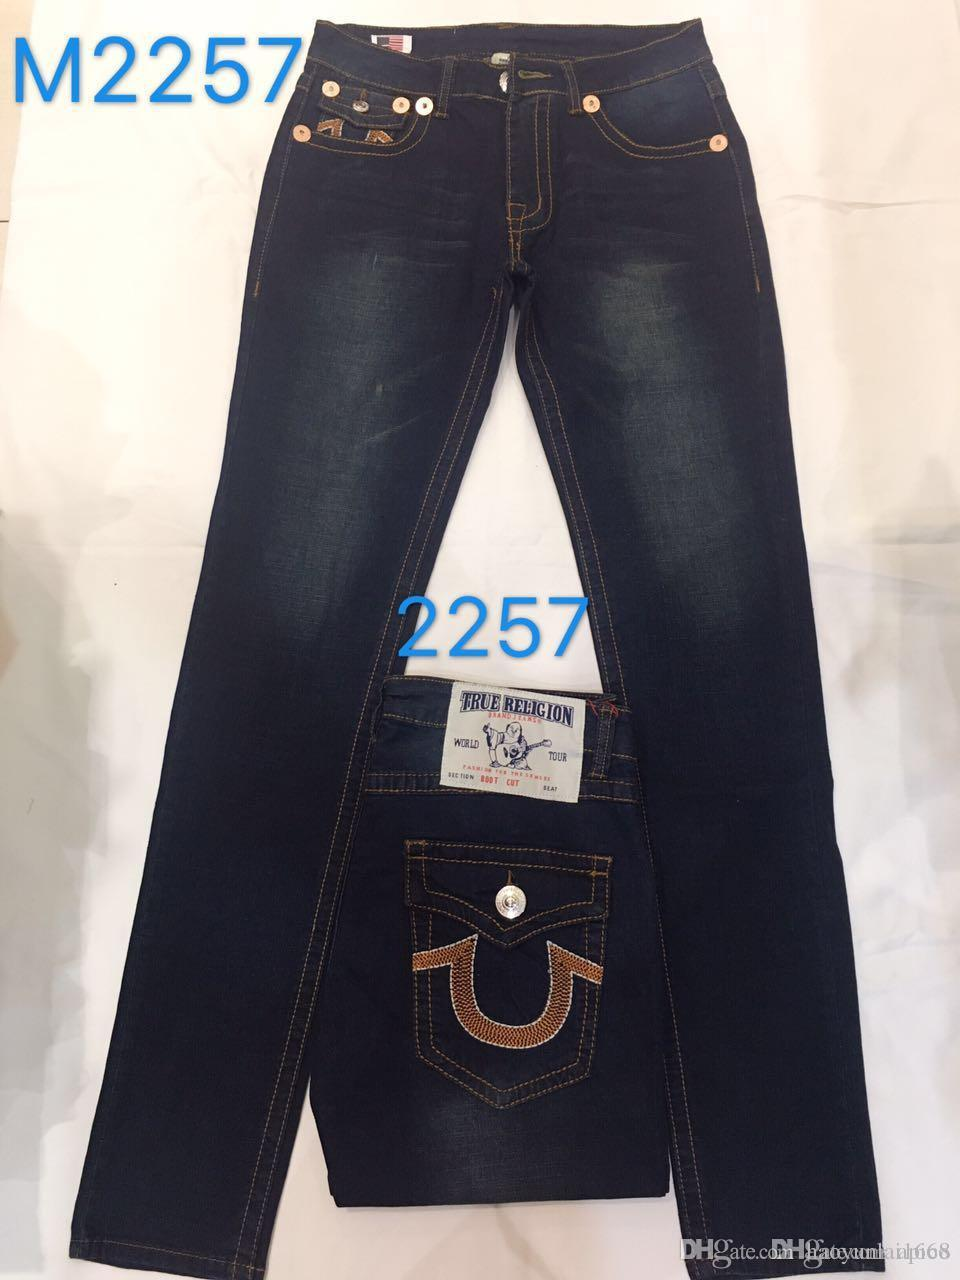 3efe795a8 2019 19ss New Men S True Jeans ROBIN High Quality Trousers Denim Designer  Dark Solid Color Straight Tr Jeans For Men Pants From Haoyunlai1668